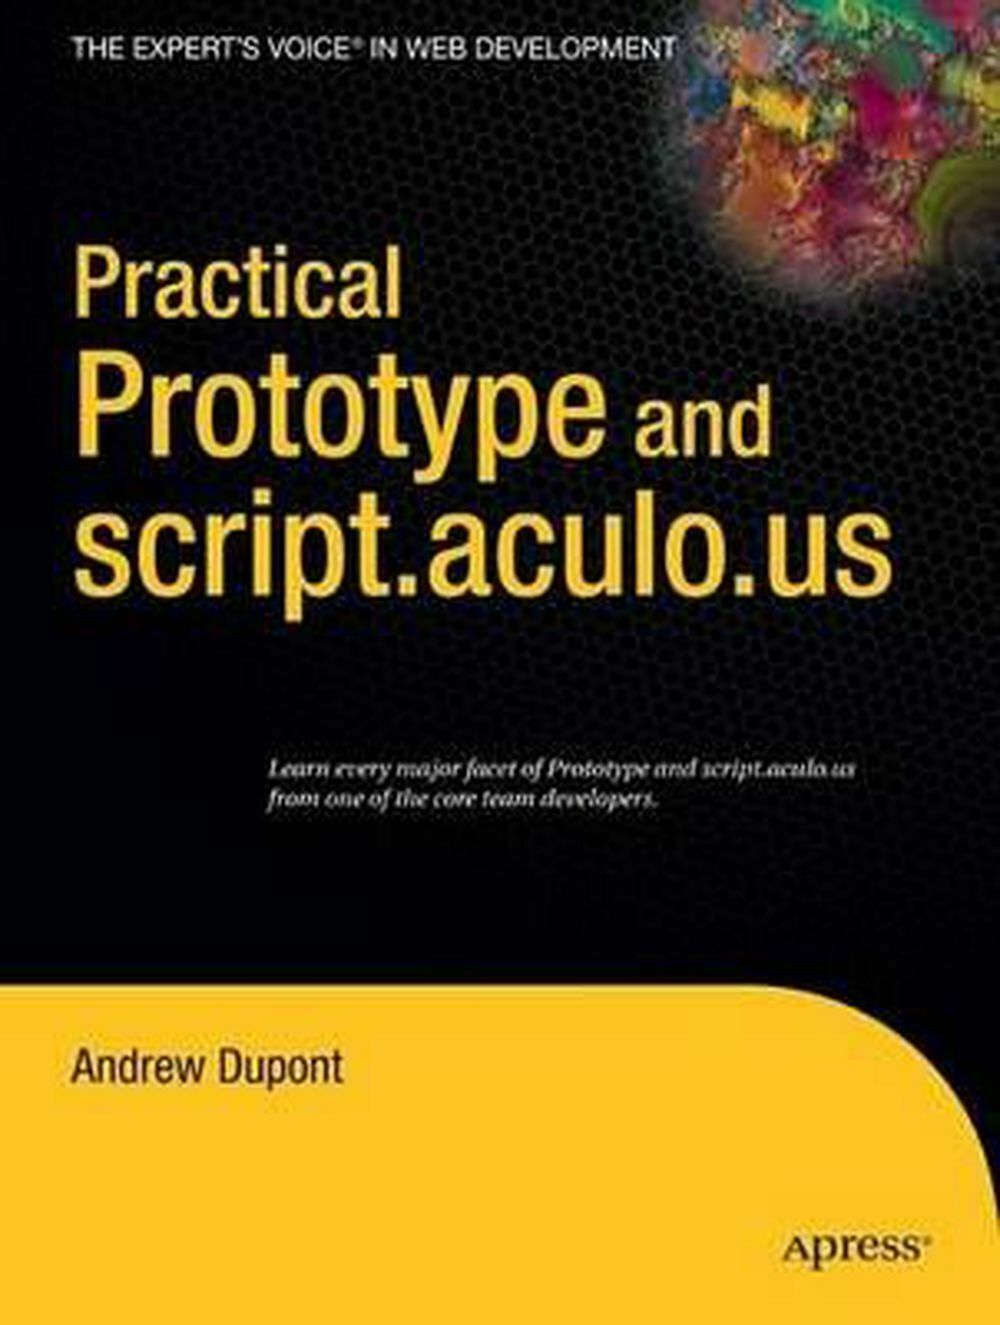 Practical Prototype and script.aculo.us by Andrew DuPont (English) Paperback Boo |